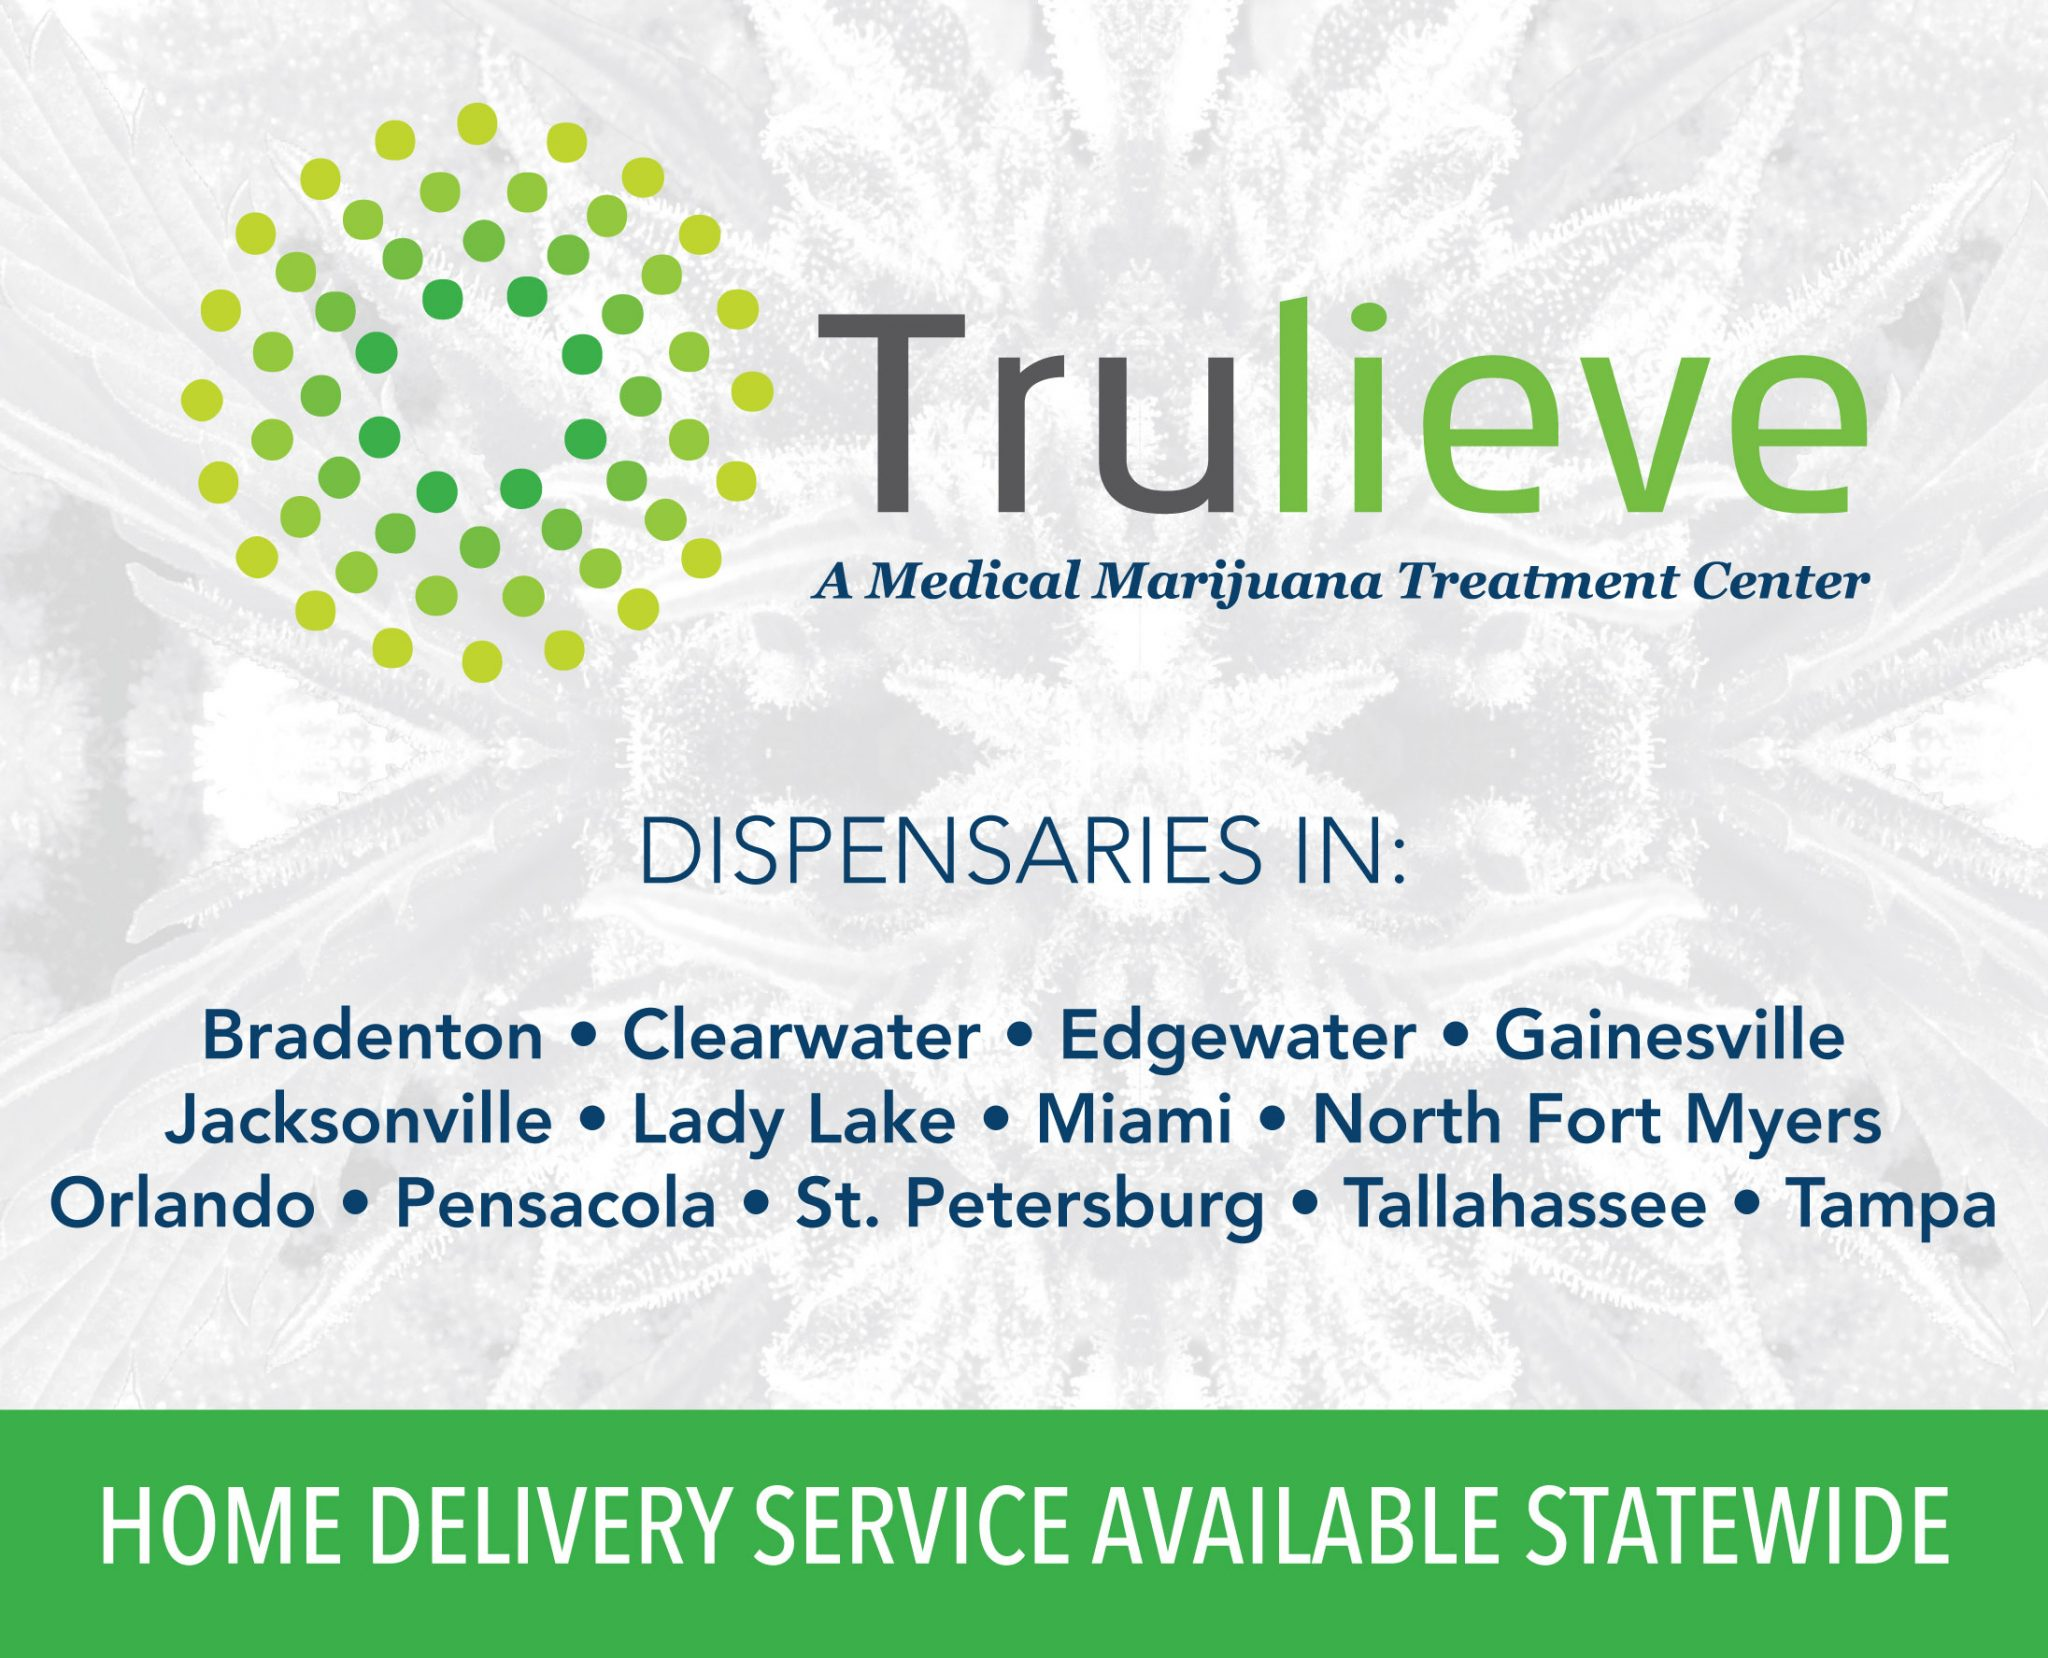 trulieve florida medical marijuana treatment center